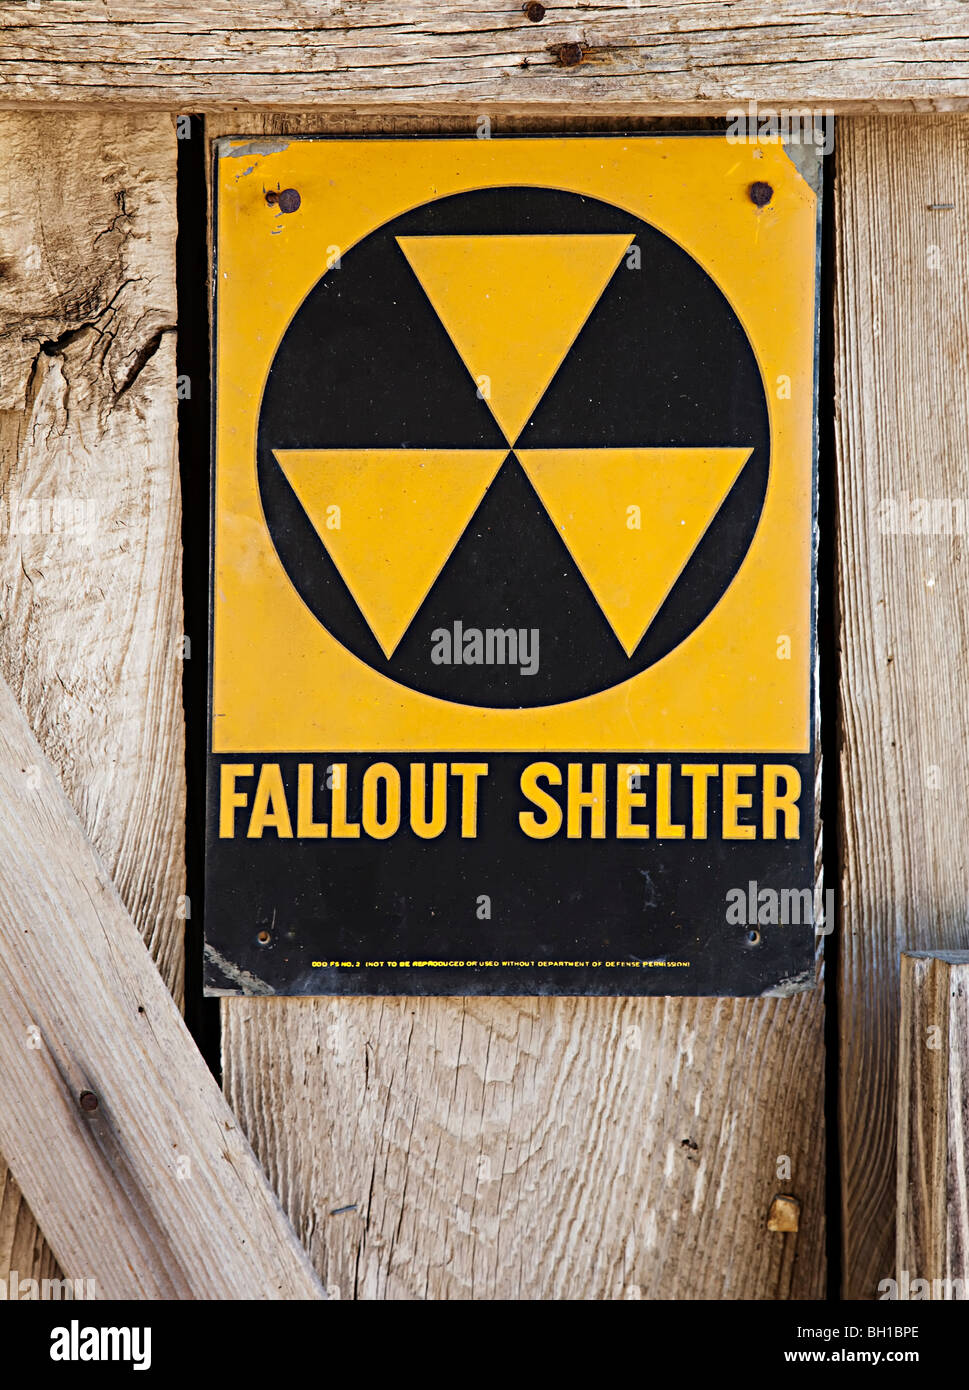 Fallout shelter sign Texas USA - Stock Image